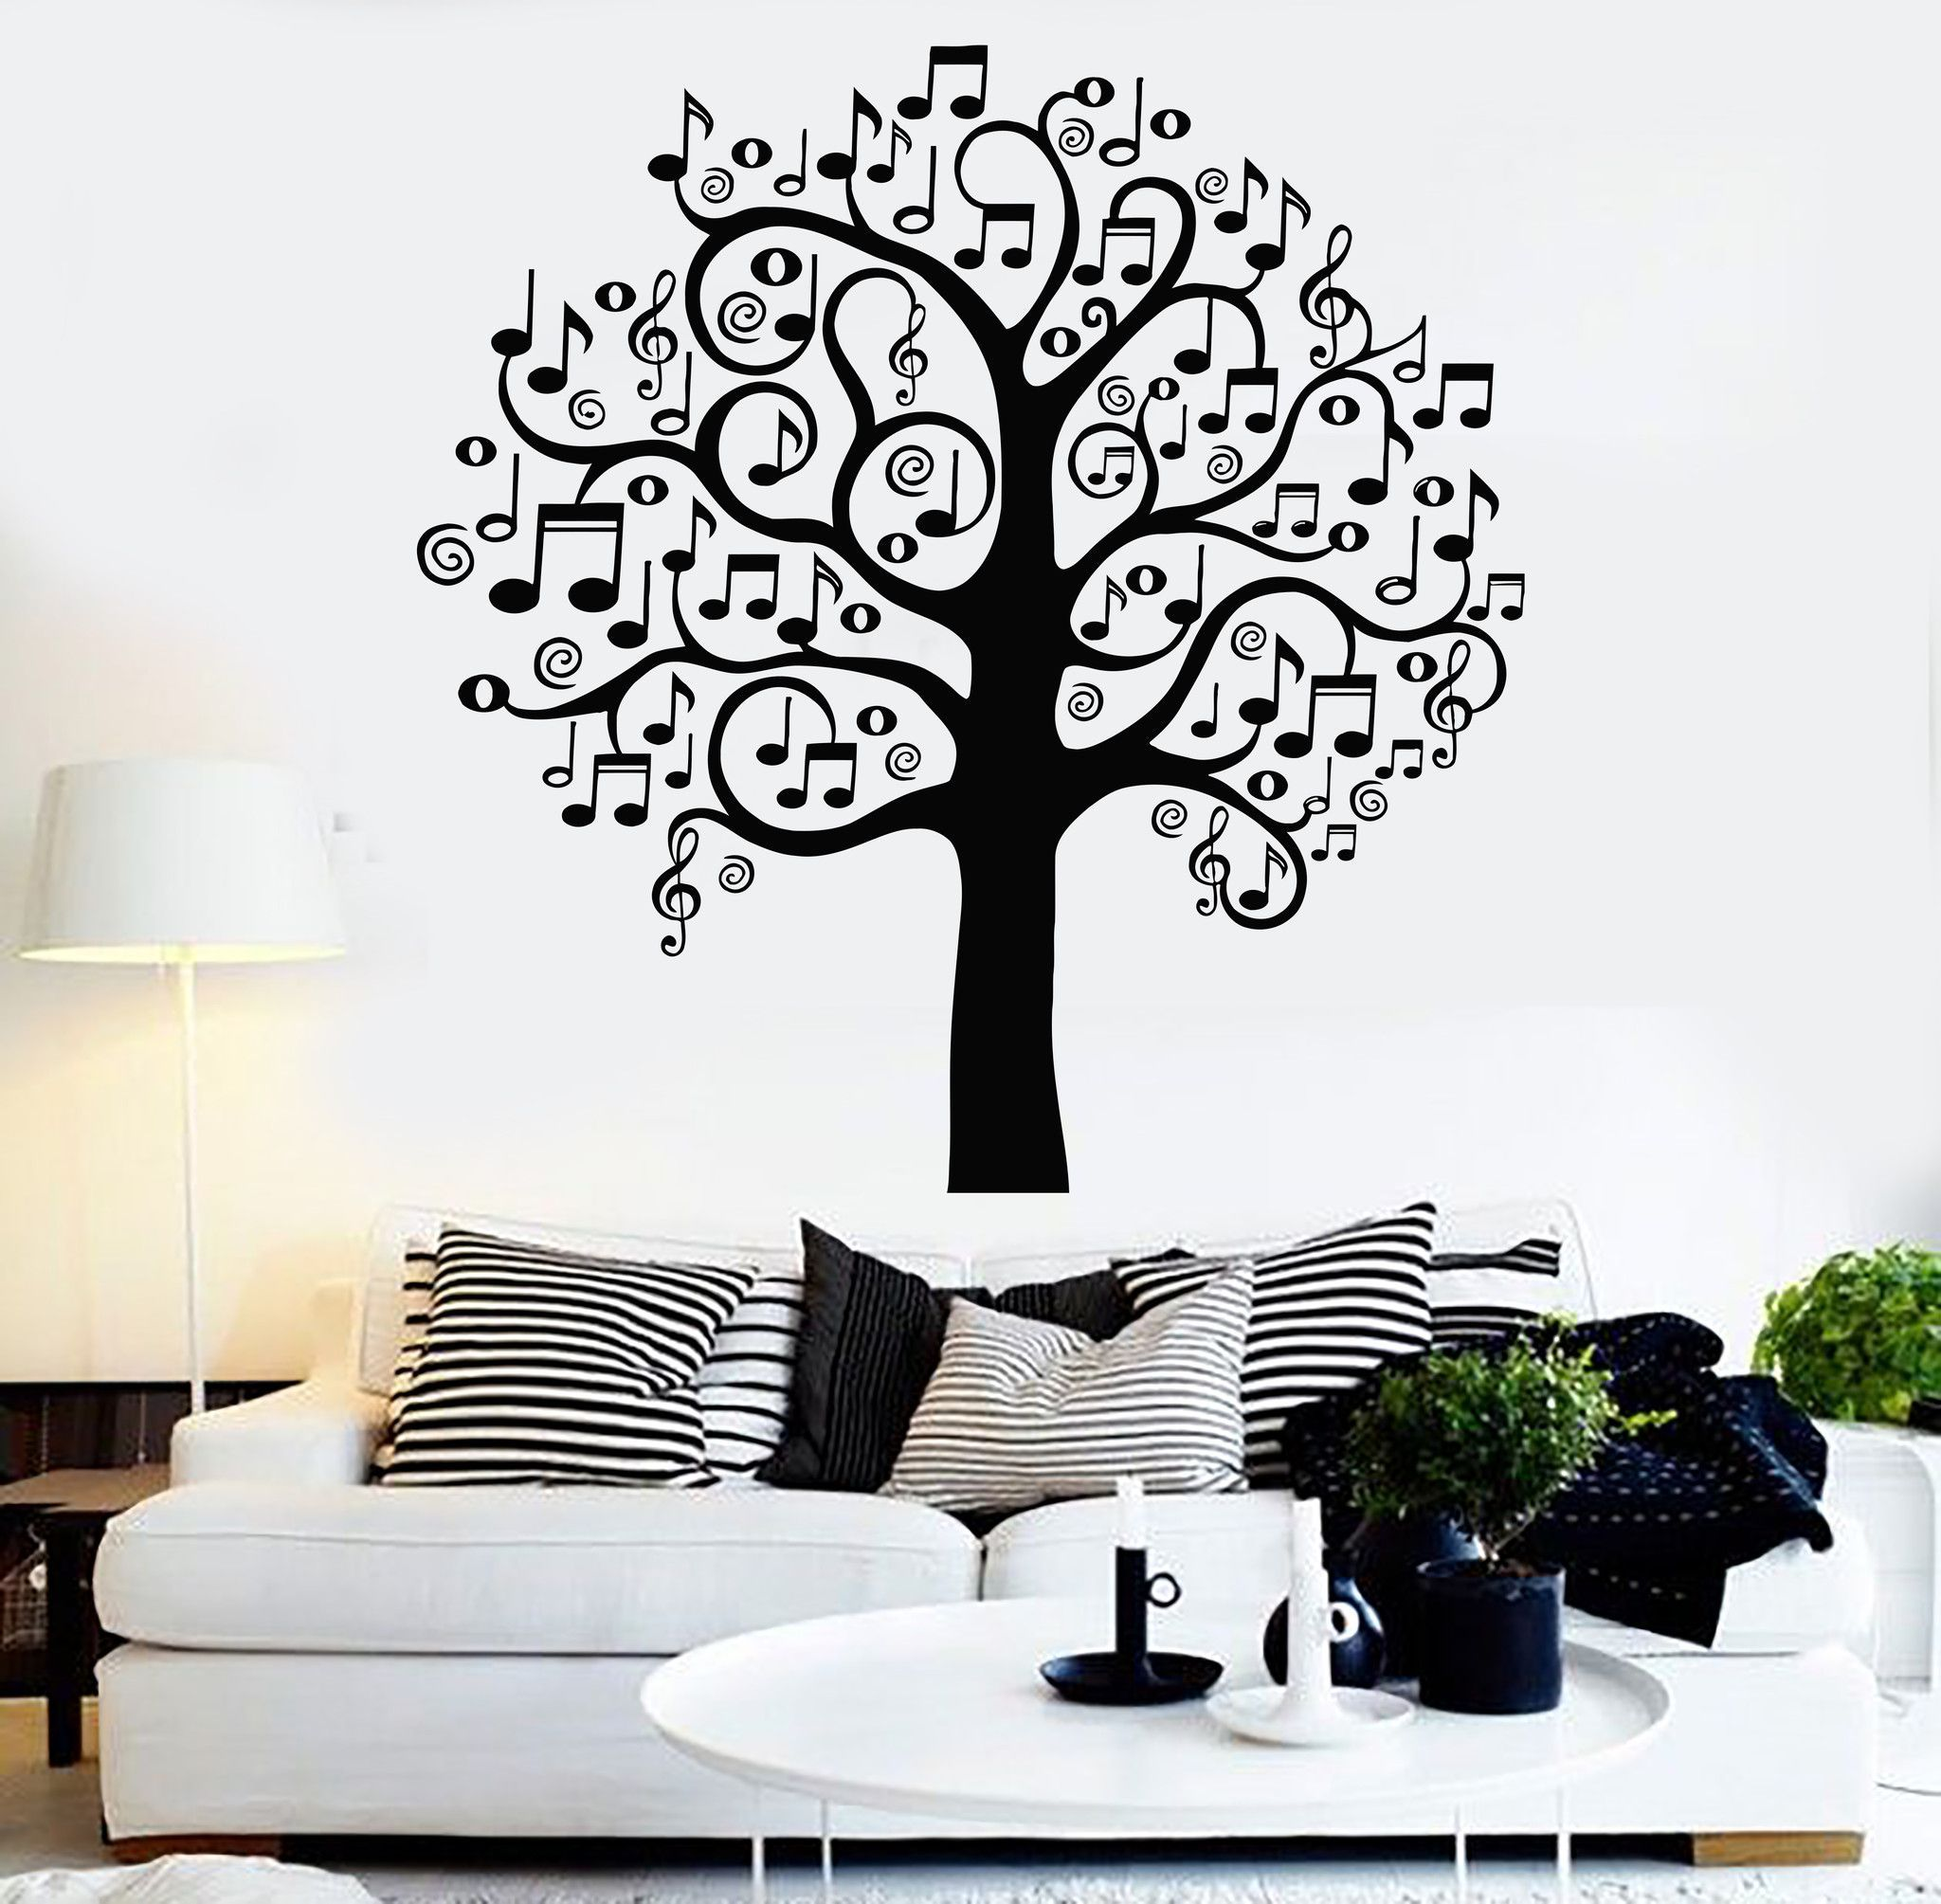 Vinyl Wall Decal Musical Tree Music Art Decor Home Decoration Stickers  Mural (141ig)